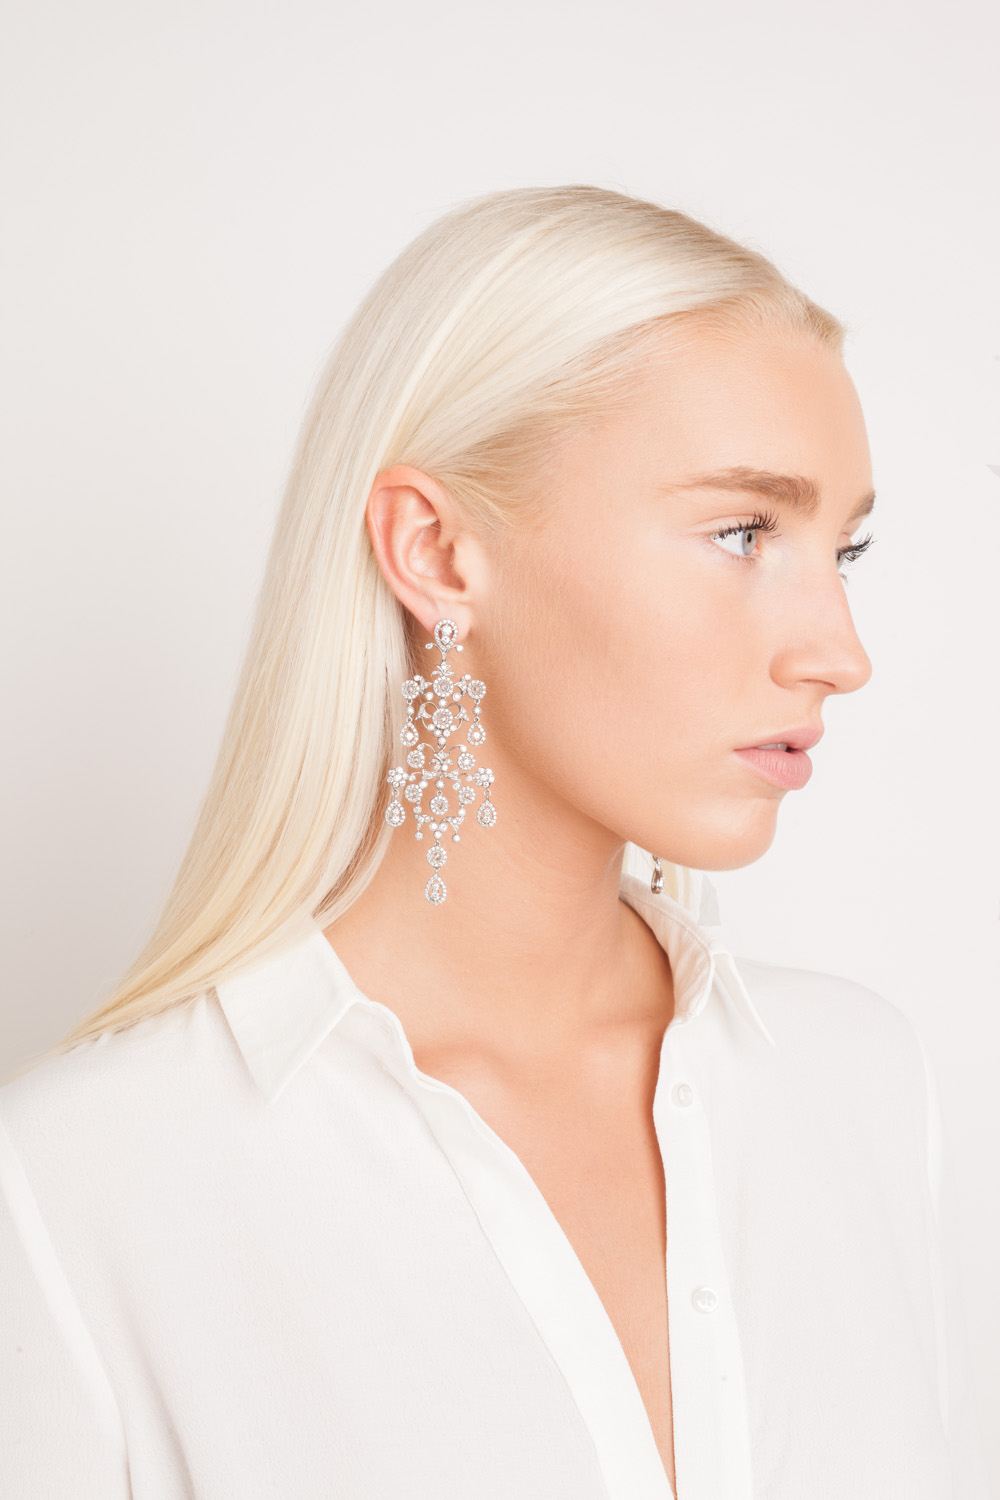 Studio fashion photography NYC jewelry lookbook photographer New York beauty shoot blonde model chandelier earrings Space 4 Shoots